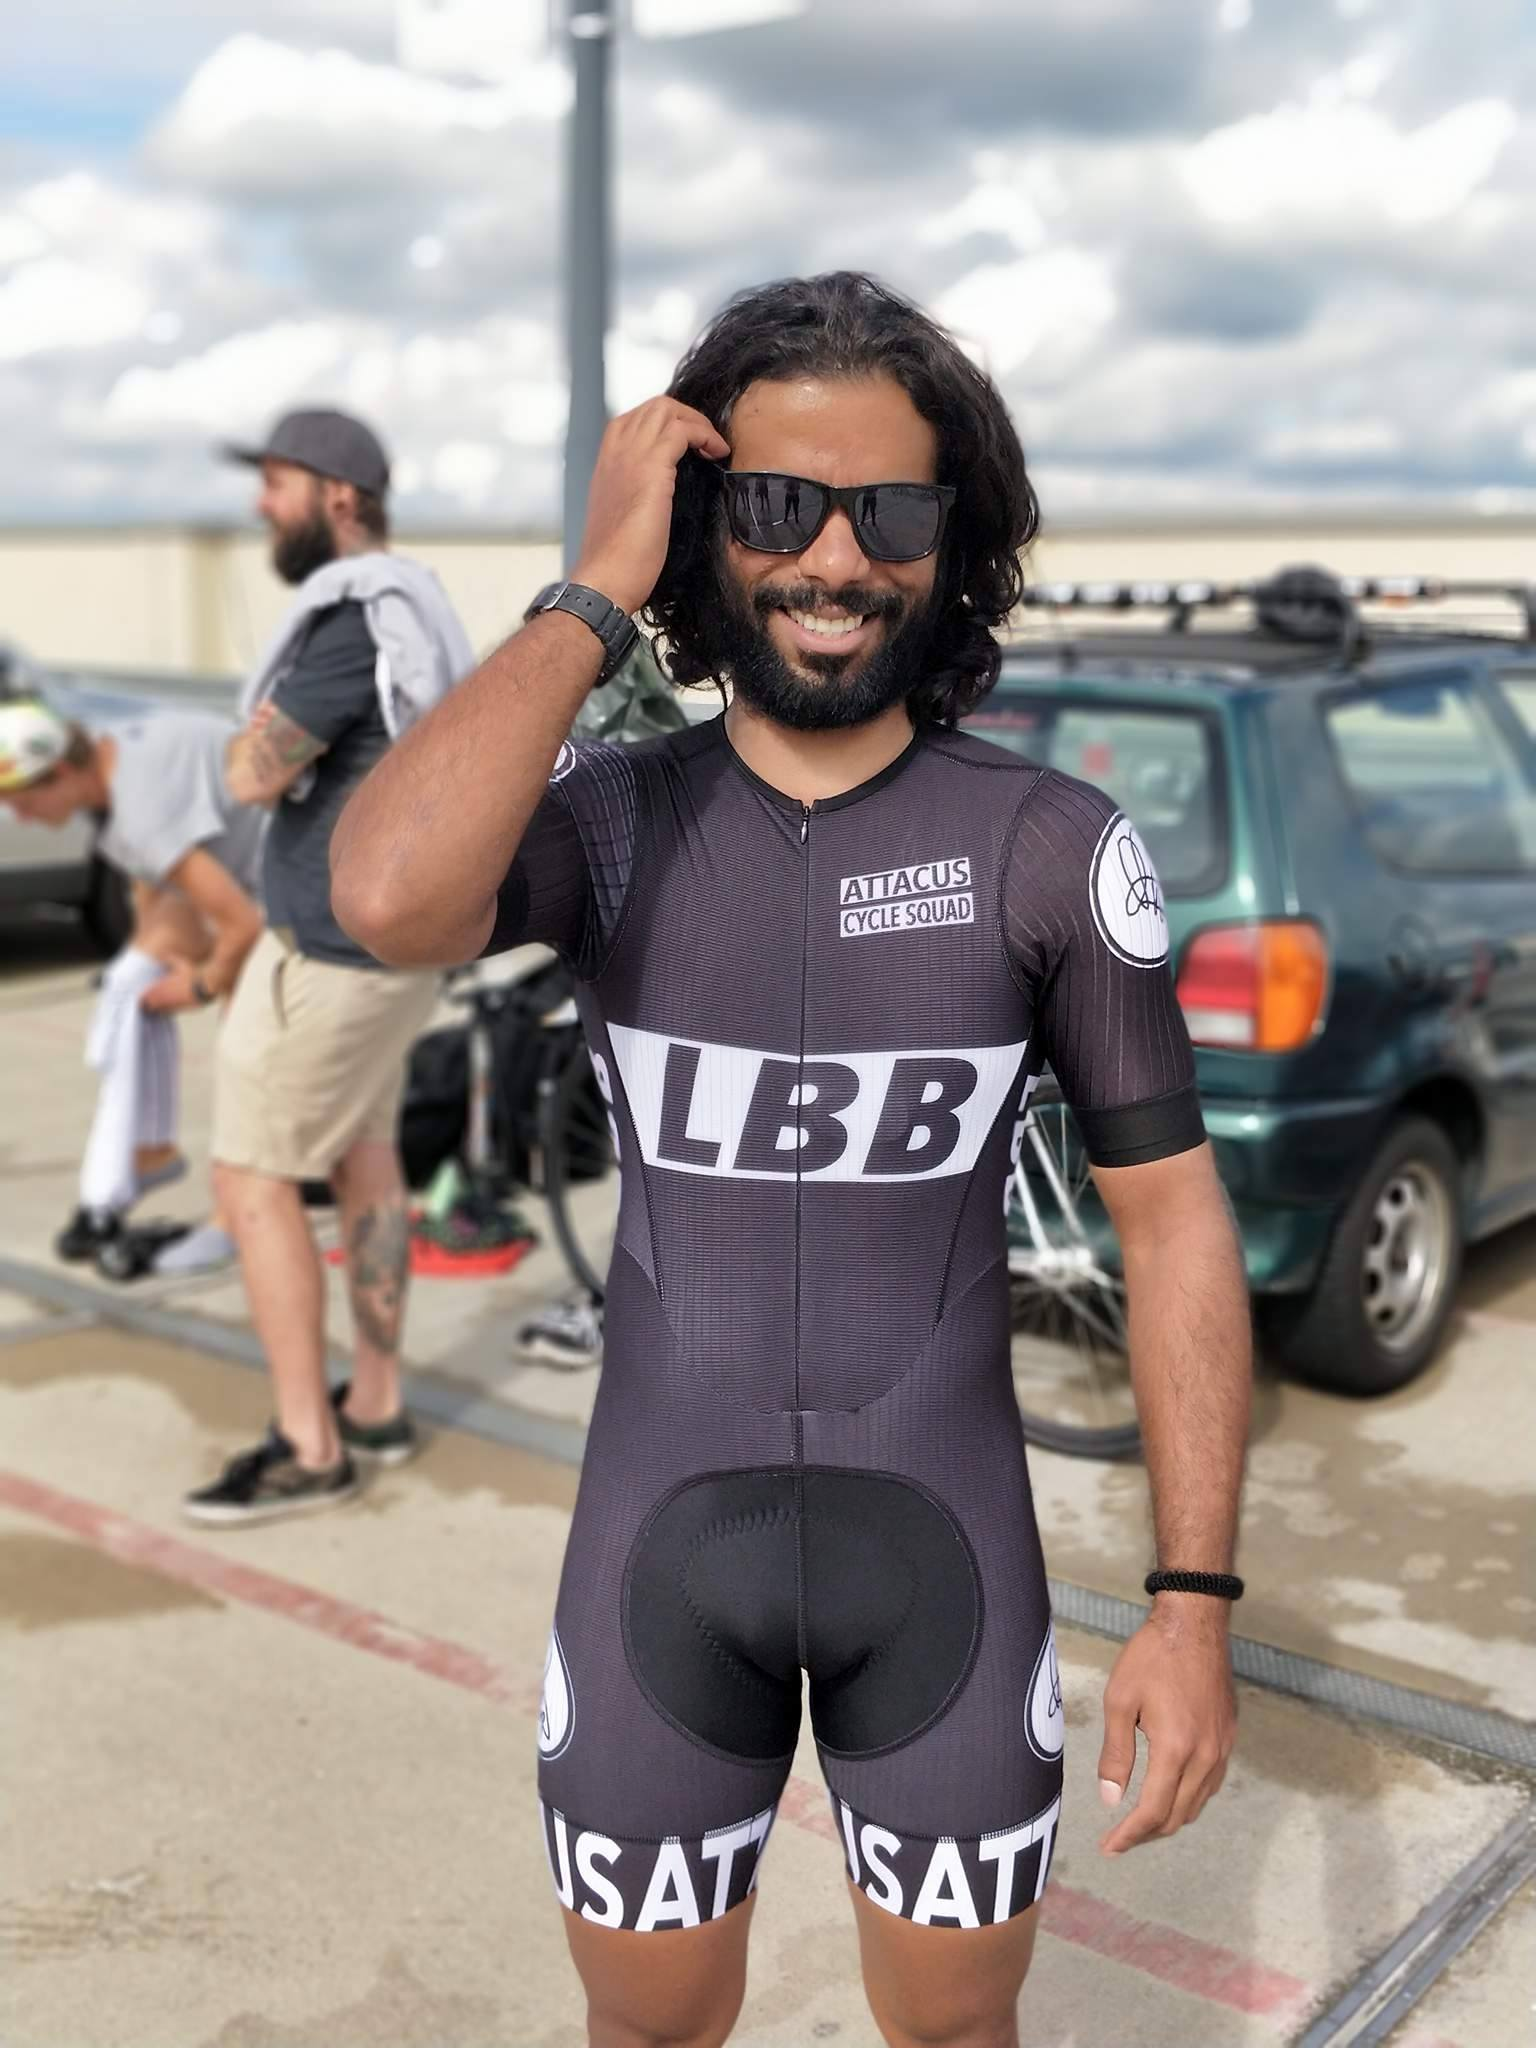 Ben Joseph rides his first fixed crit race in Attacus Cycle Squad skin suit